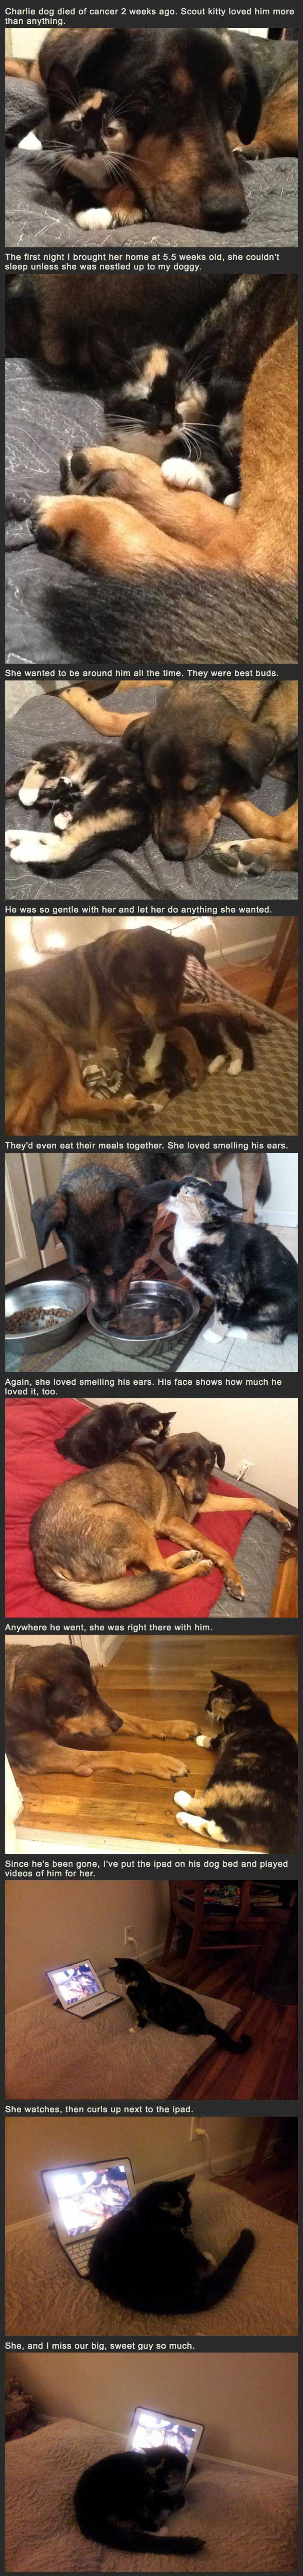 What do you do for your pets when they miss their other pets? In this technological age, a lot more than you used to be able to. This cat was best friends with a dog, who had died of cancer. When the dog was finally gone, the cat seemed to still be looking for him. [...]Continue reading...